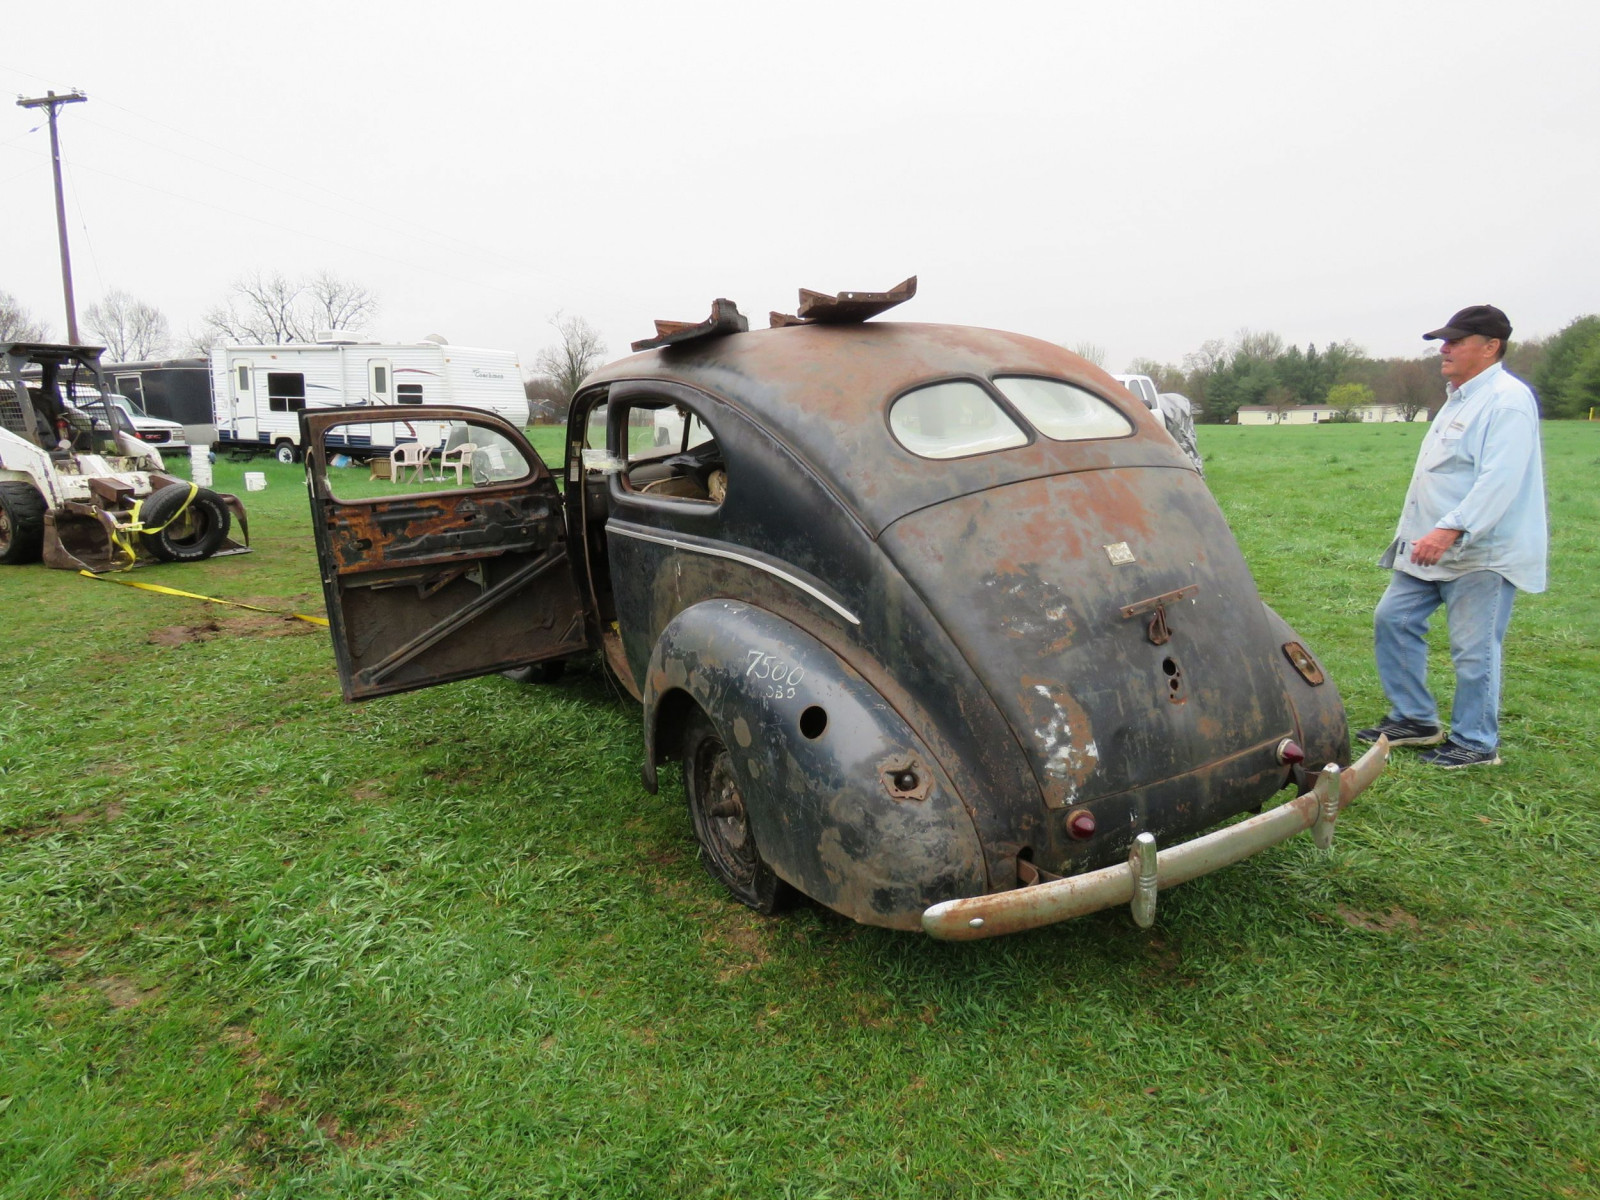 1940 Ford 2dr Sedan for Rod or Restore - Image 6